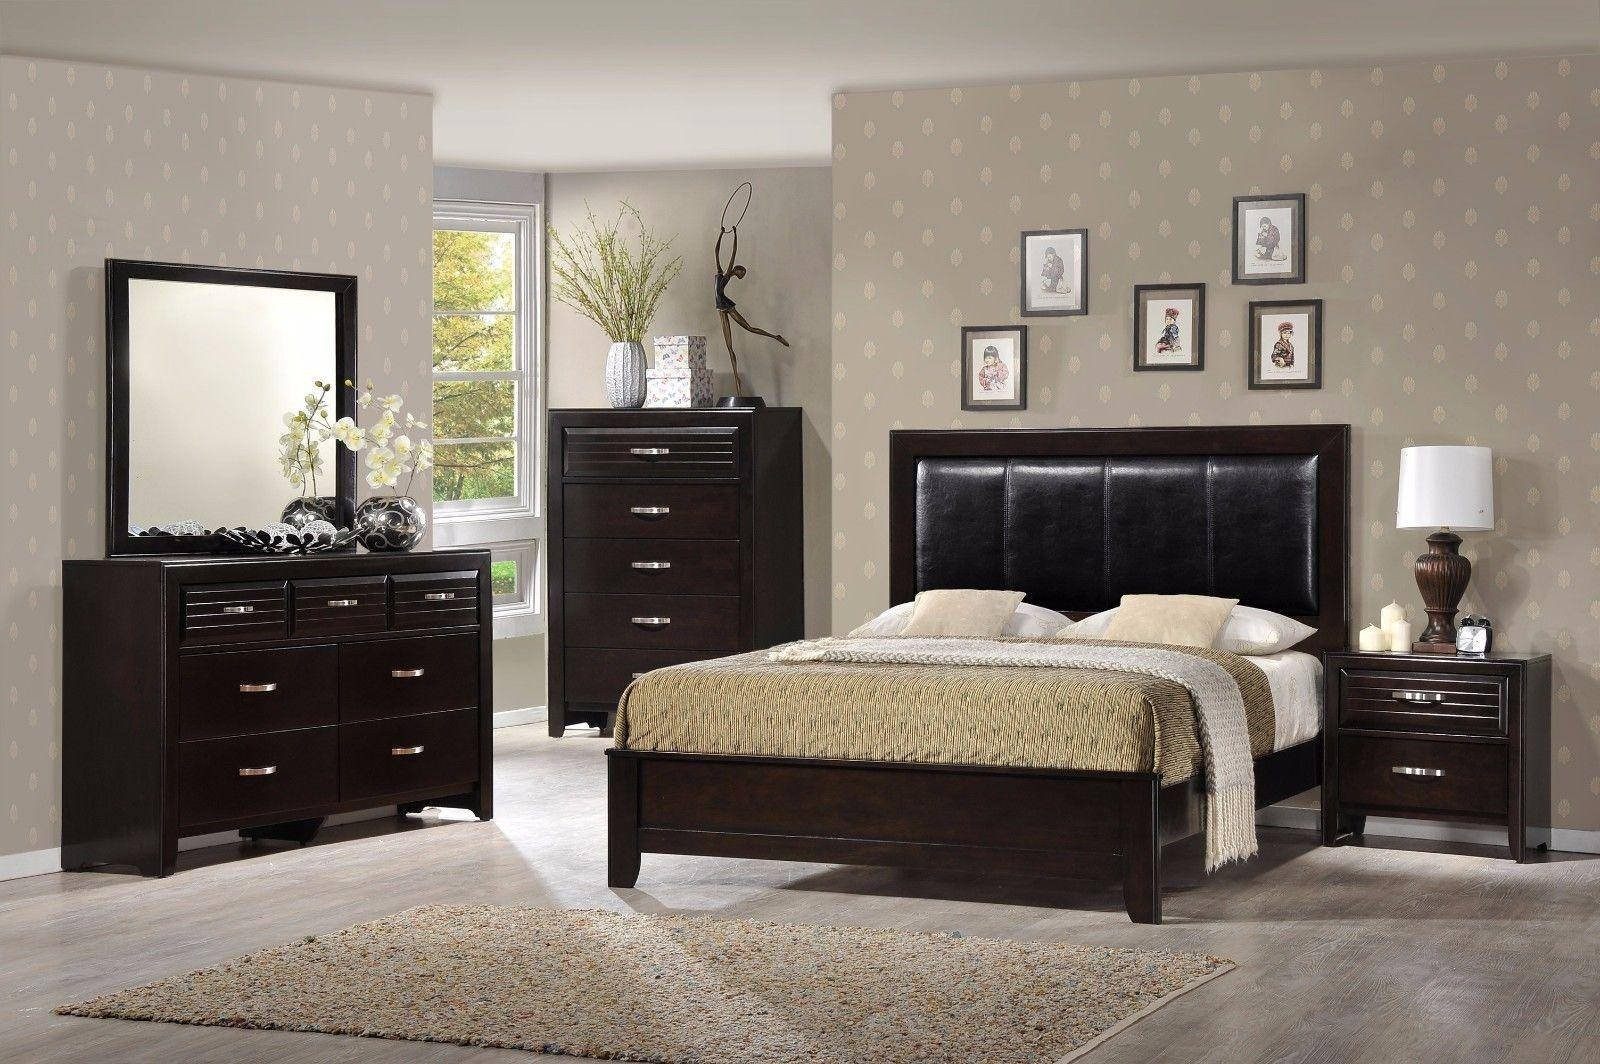 Solid Oak Bedroom Set Fresh Crown Mark B7400 Jocelyn Dark Espresso solid Wood King Size Bedroom Set 3pcs